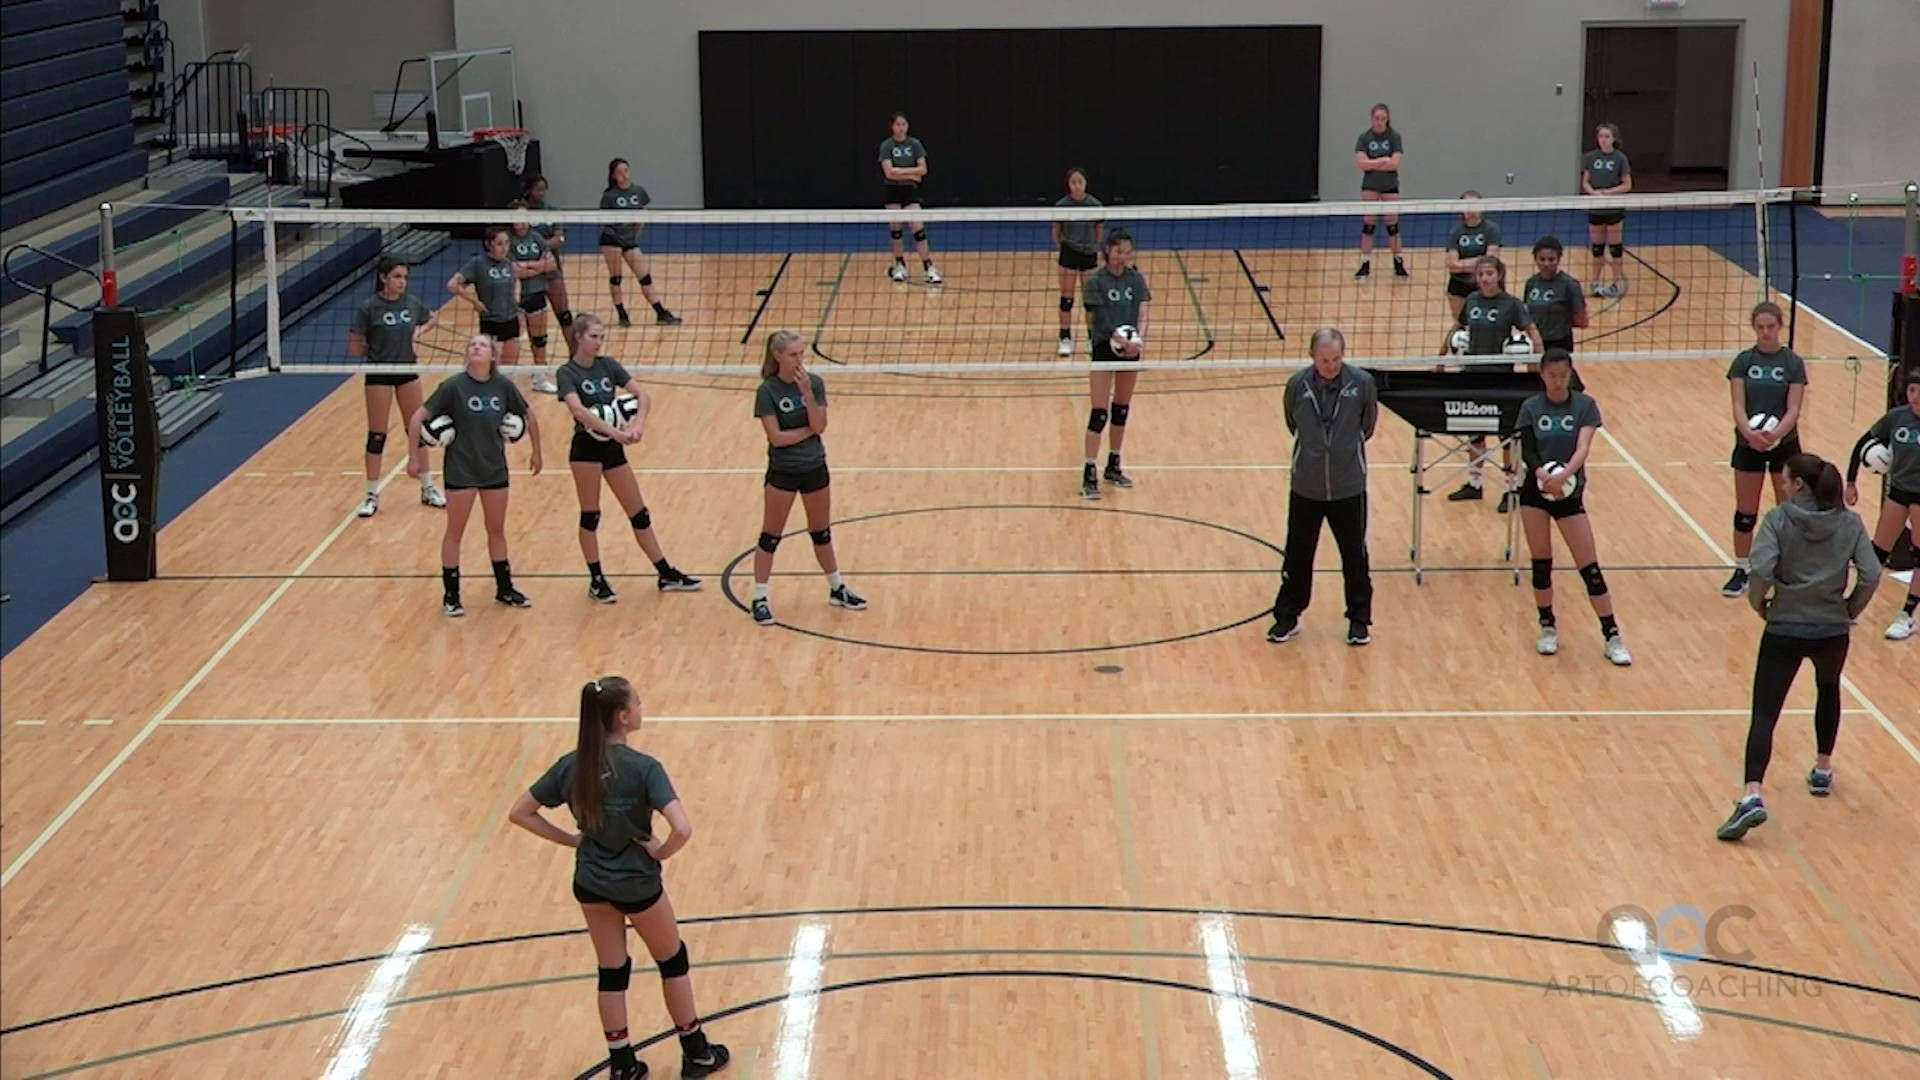 Don T Put Your Platform Together Too Early The Art Of Coaching Volleyball Coaching Volleyball Volleyball Team Pictures Volleyball